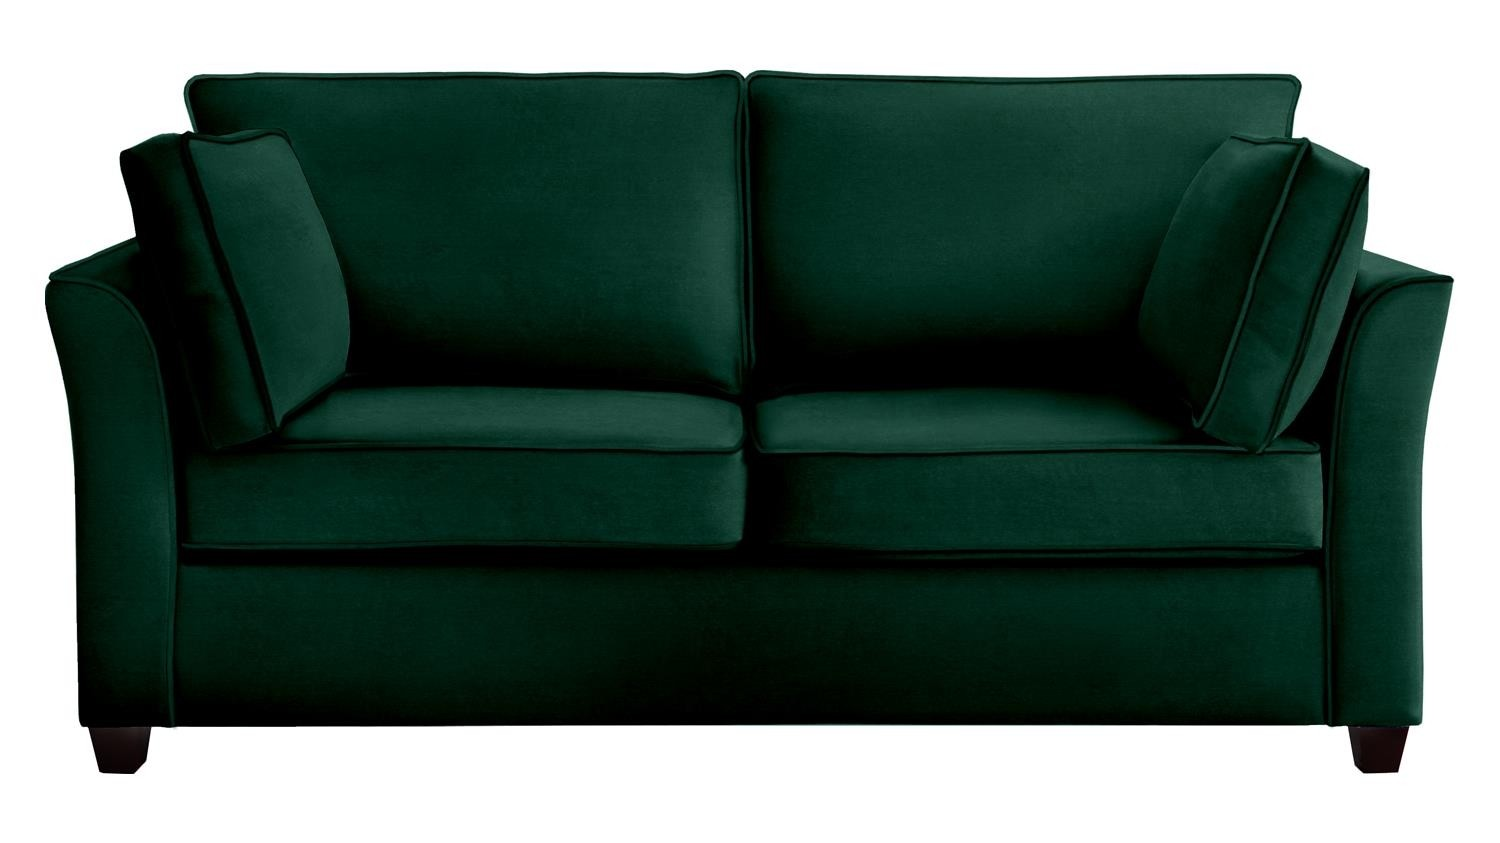 The Elmley 3 Seater Sofa Bed